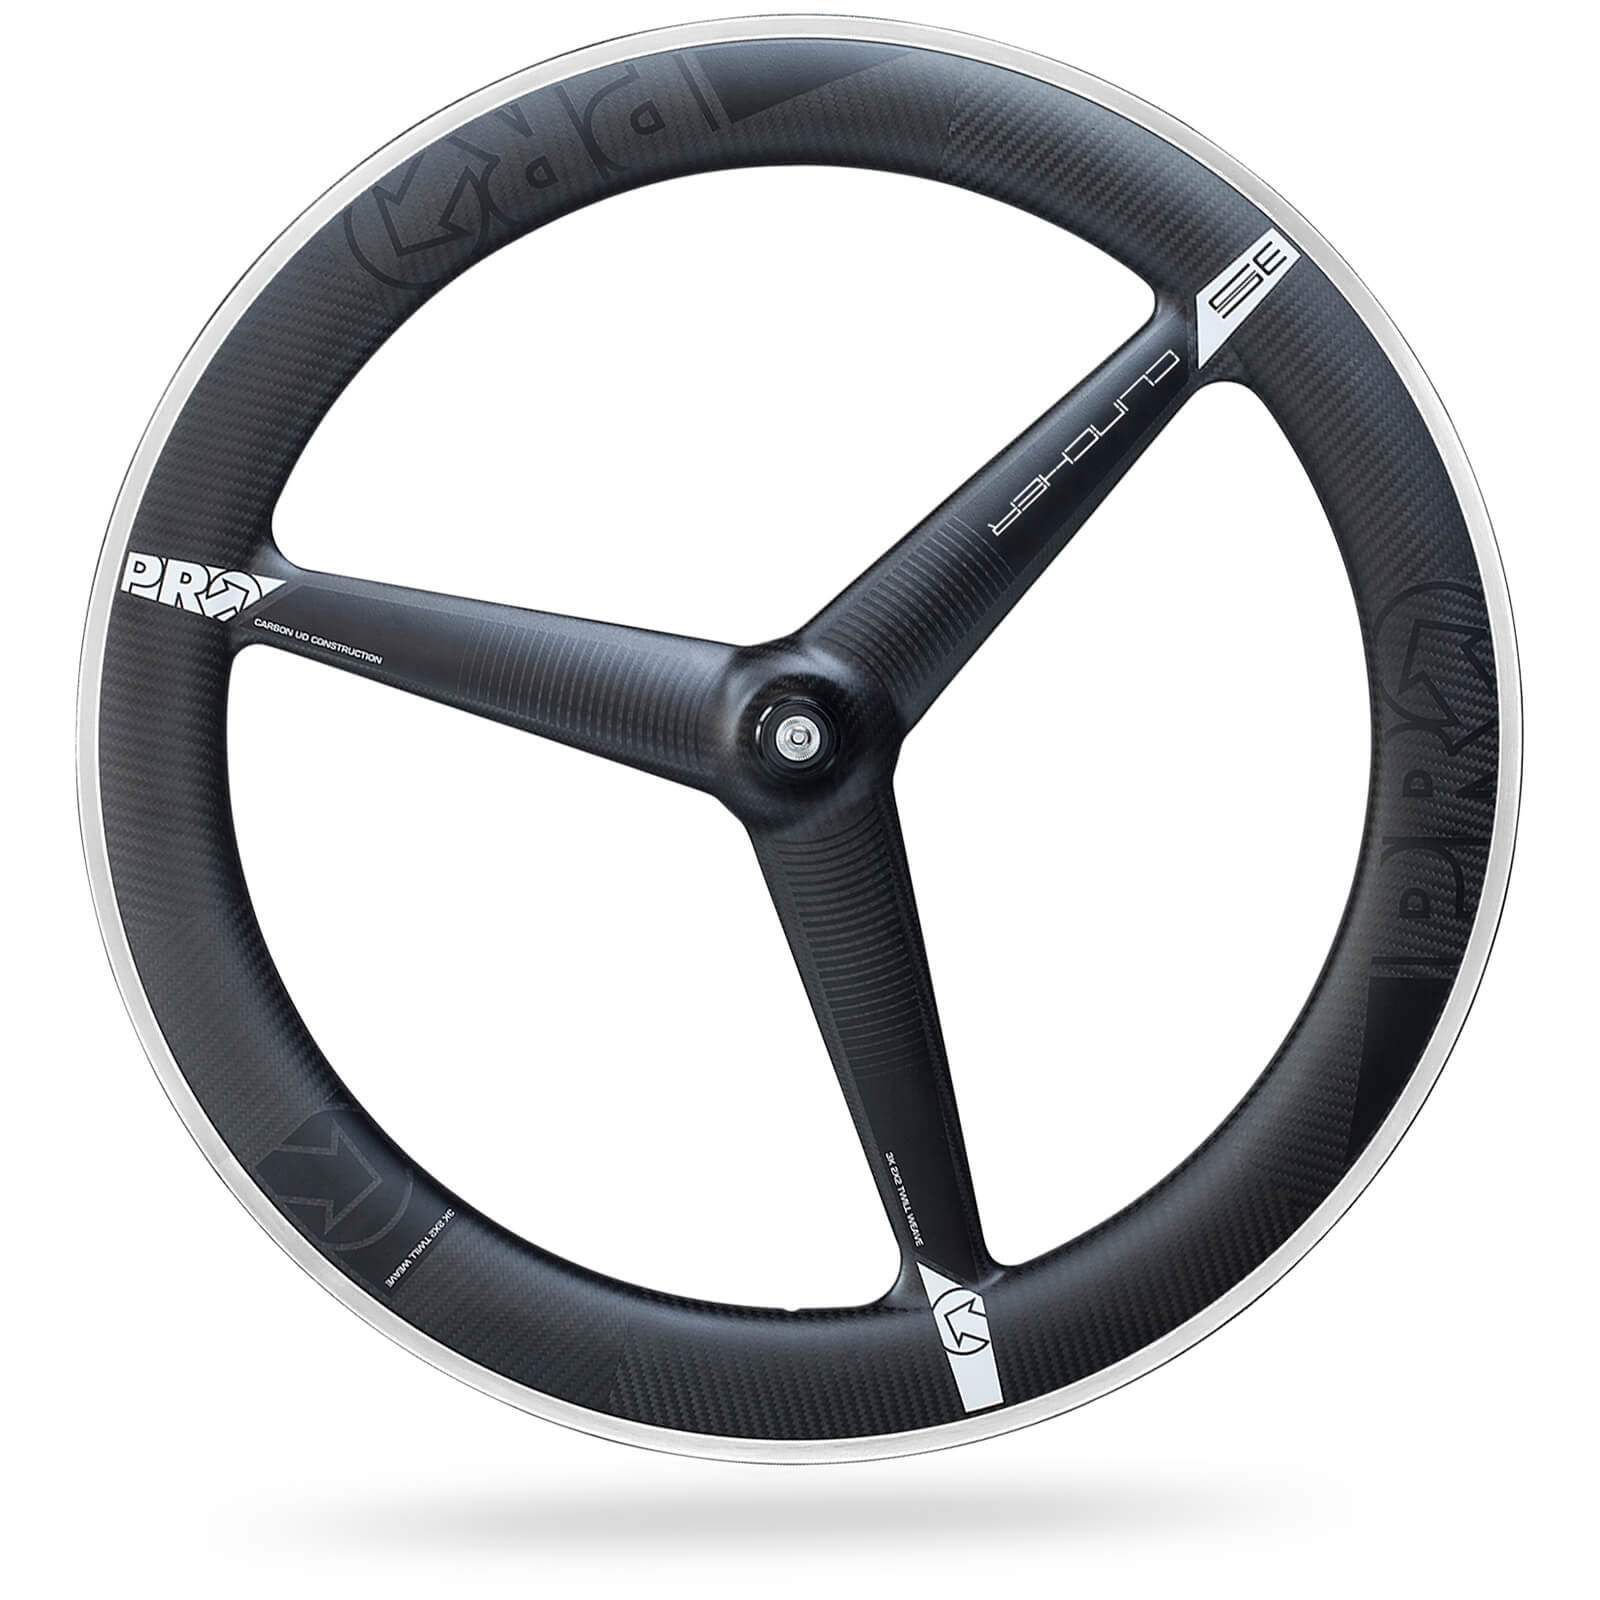 PRO Carbon Clincher 3 Spoke Front Wheel